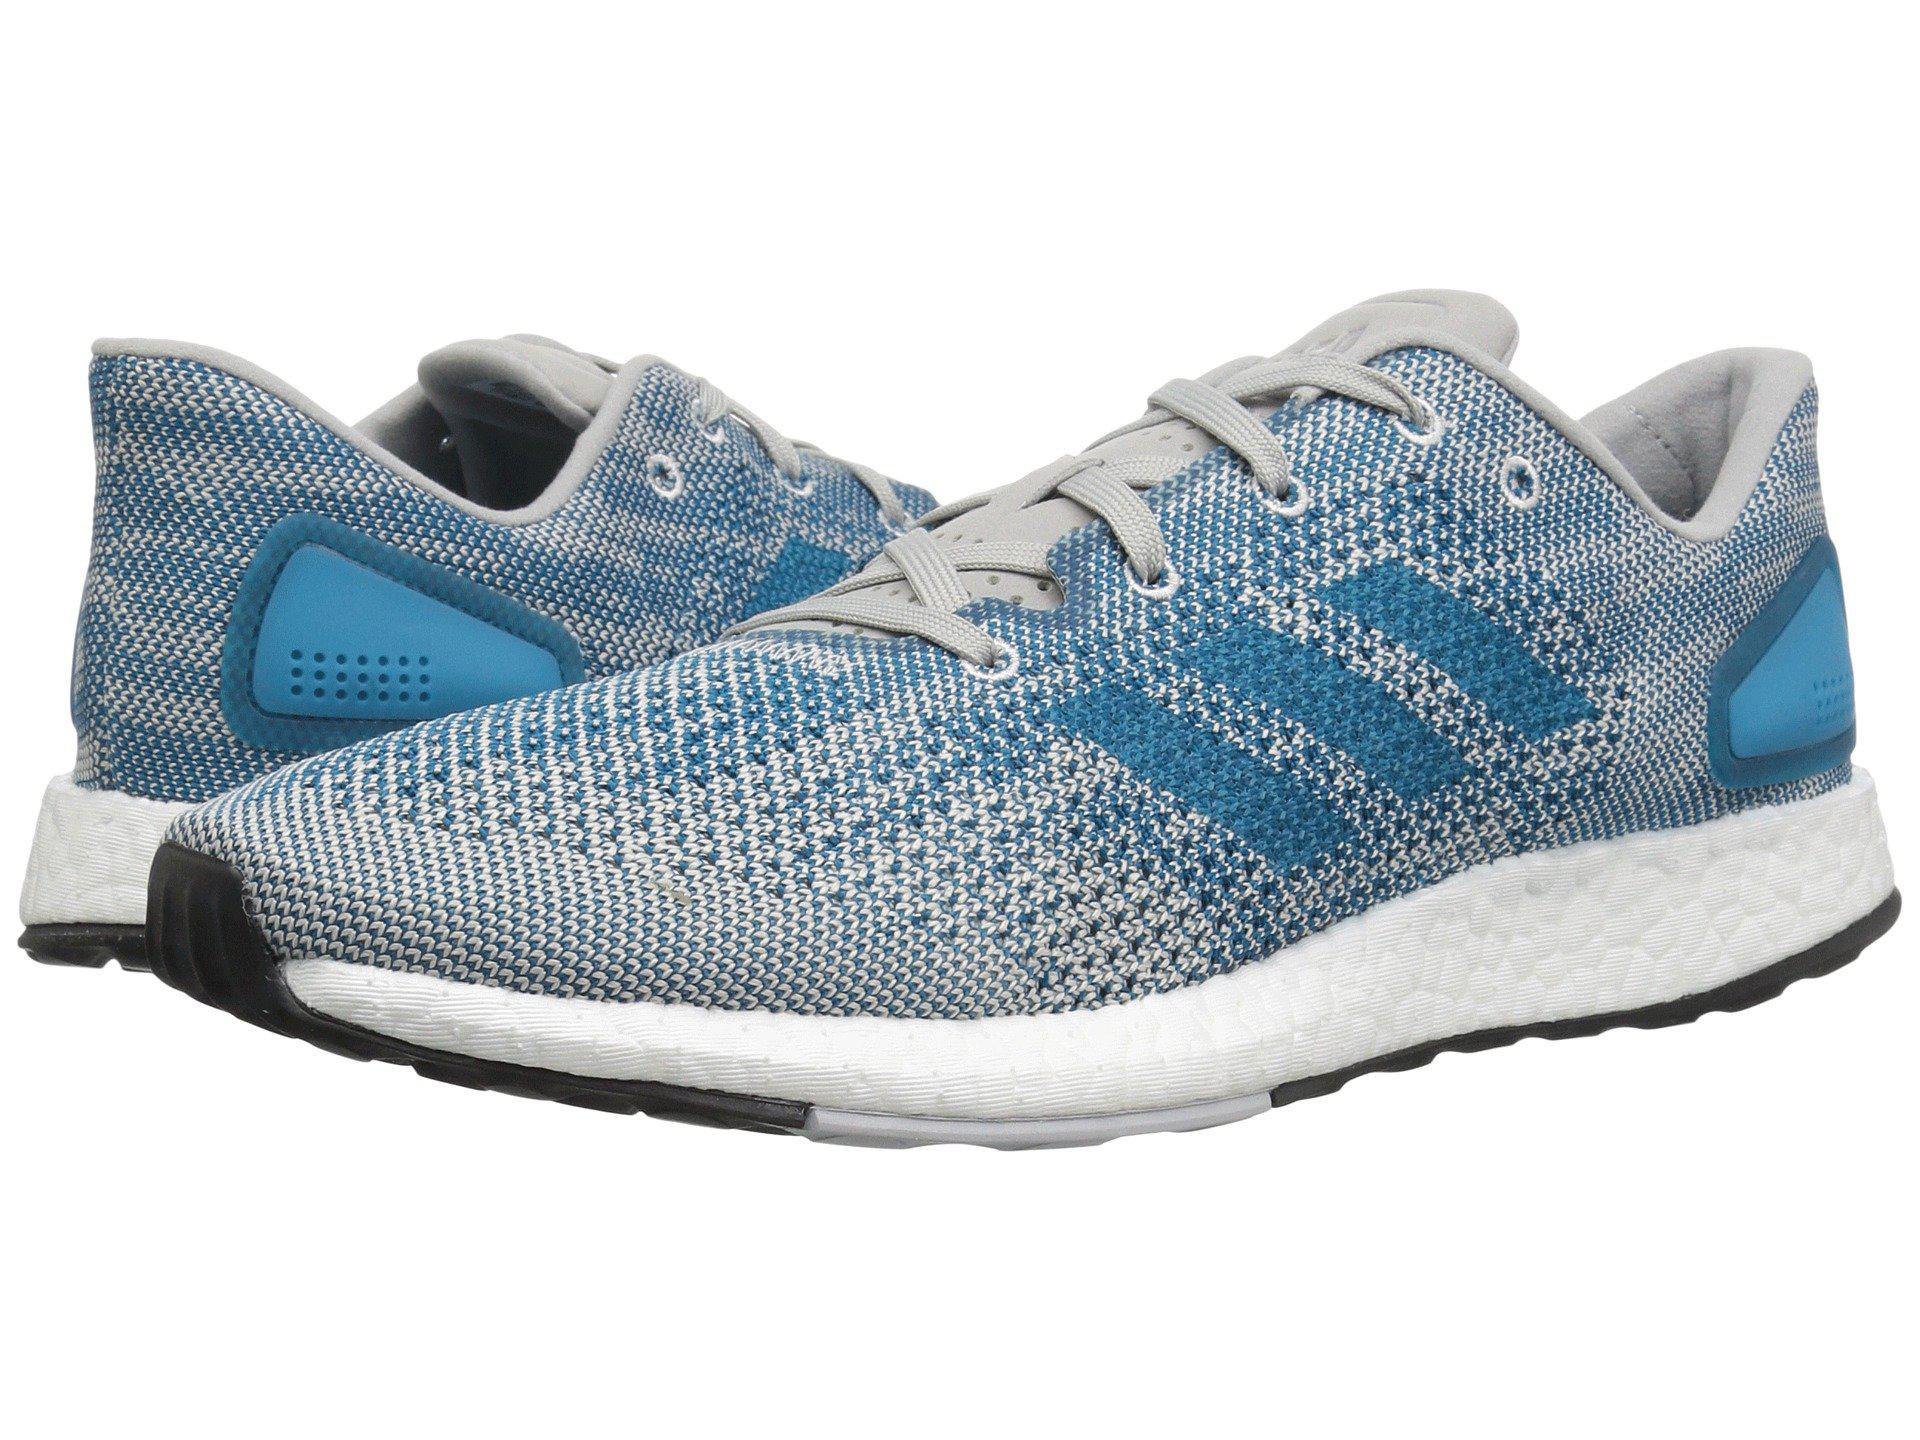 adidas Pure BOOST DPR Mens Running Shoes Men's Blue Fitness